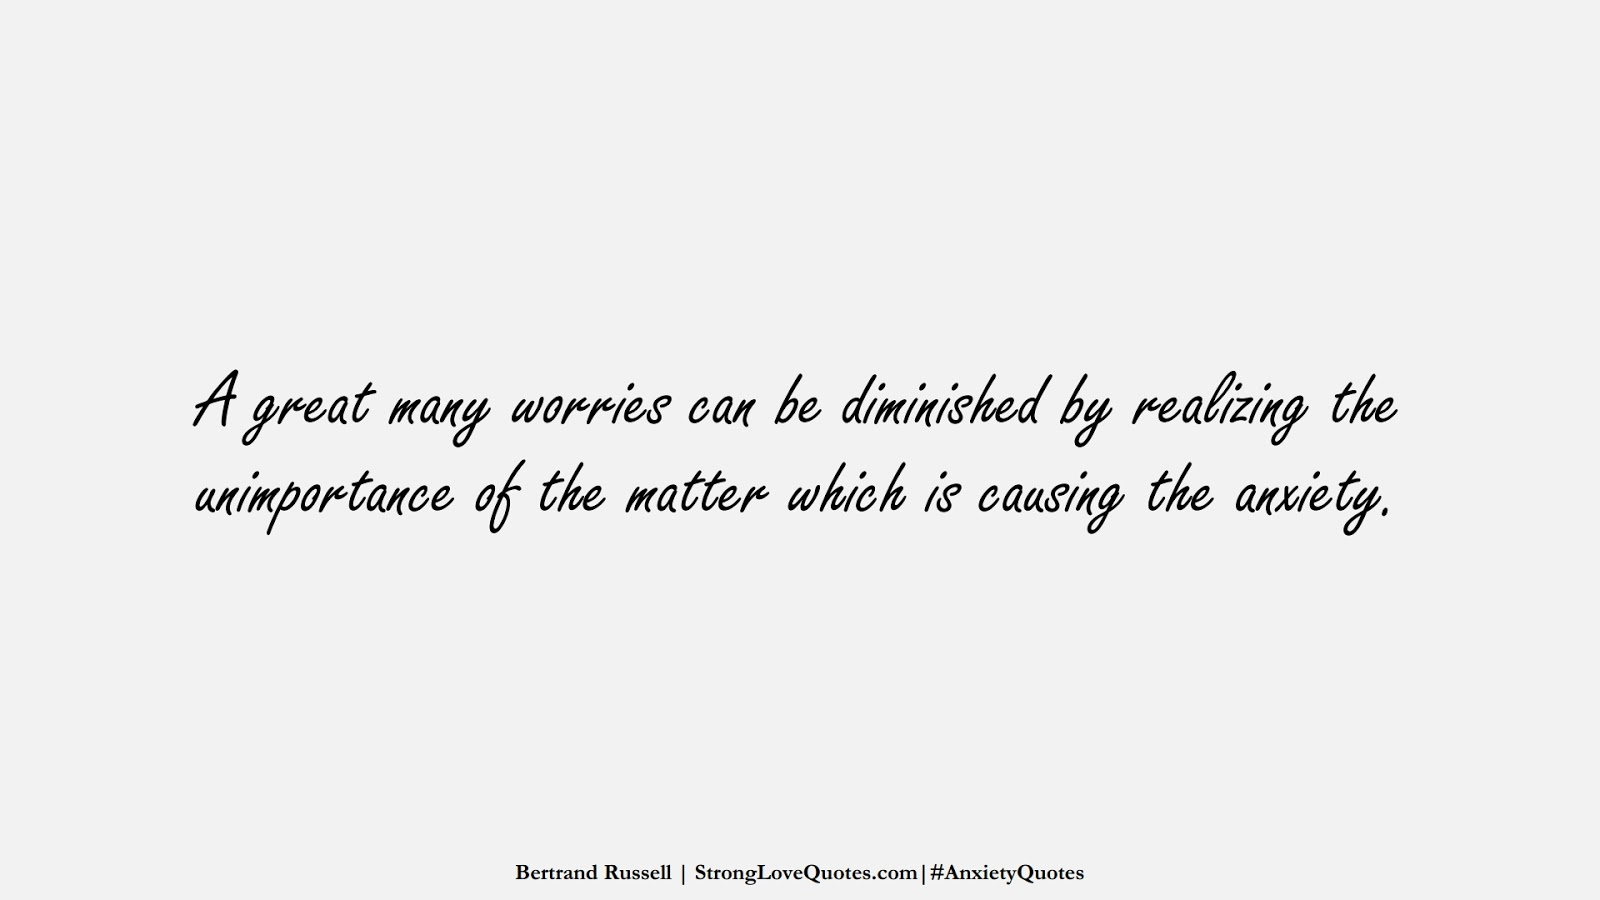 A great many worries can be diminished by realizing the unimportance of the matter which is causing the anxiety. (Bertrand Russell);  #AnxietyQuotes